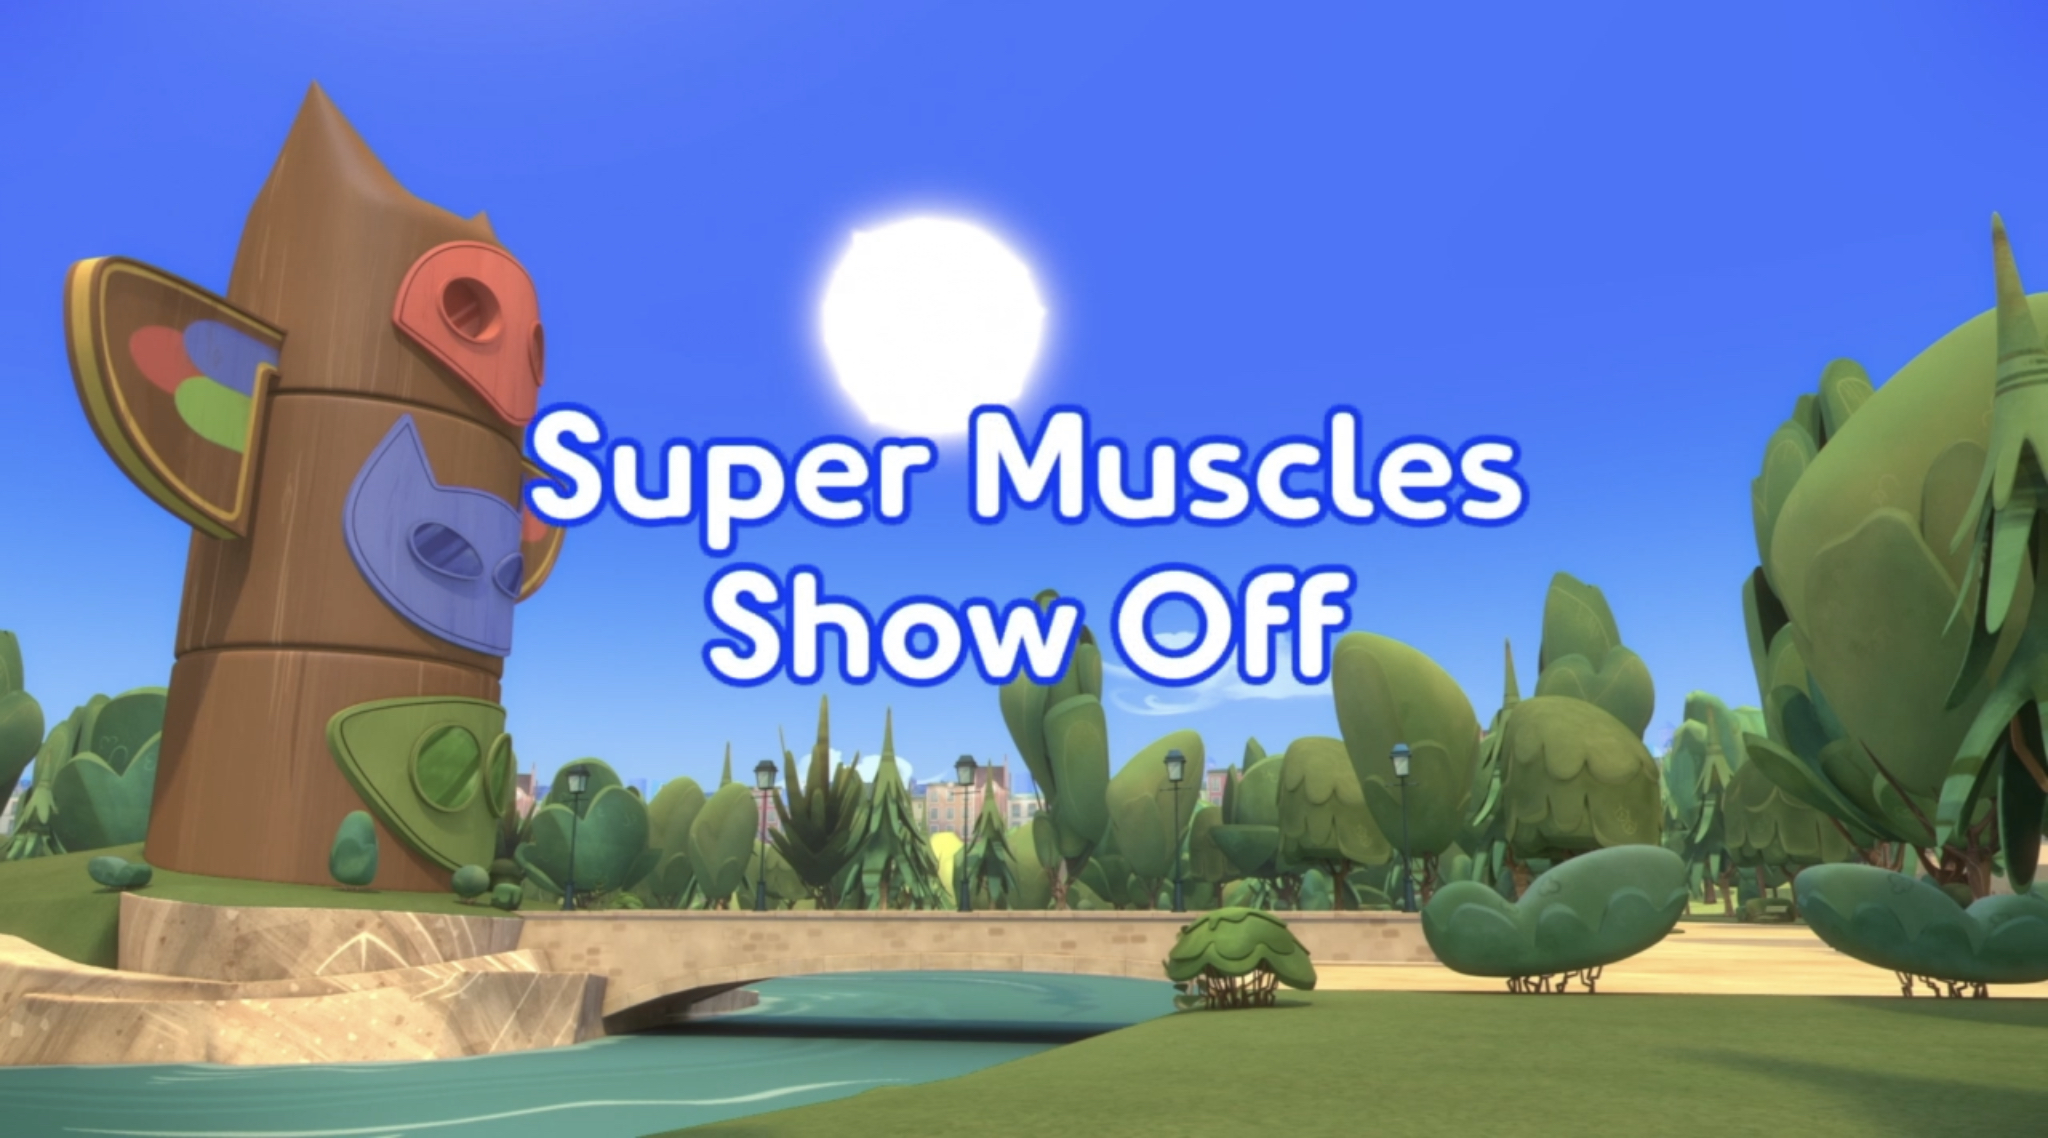 Super Muscles Show Off